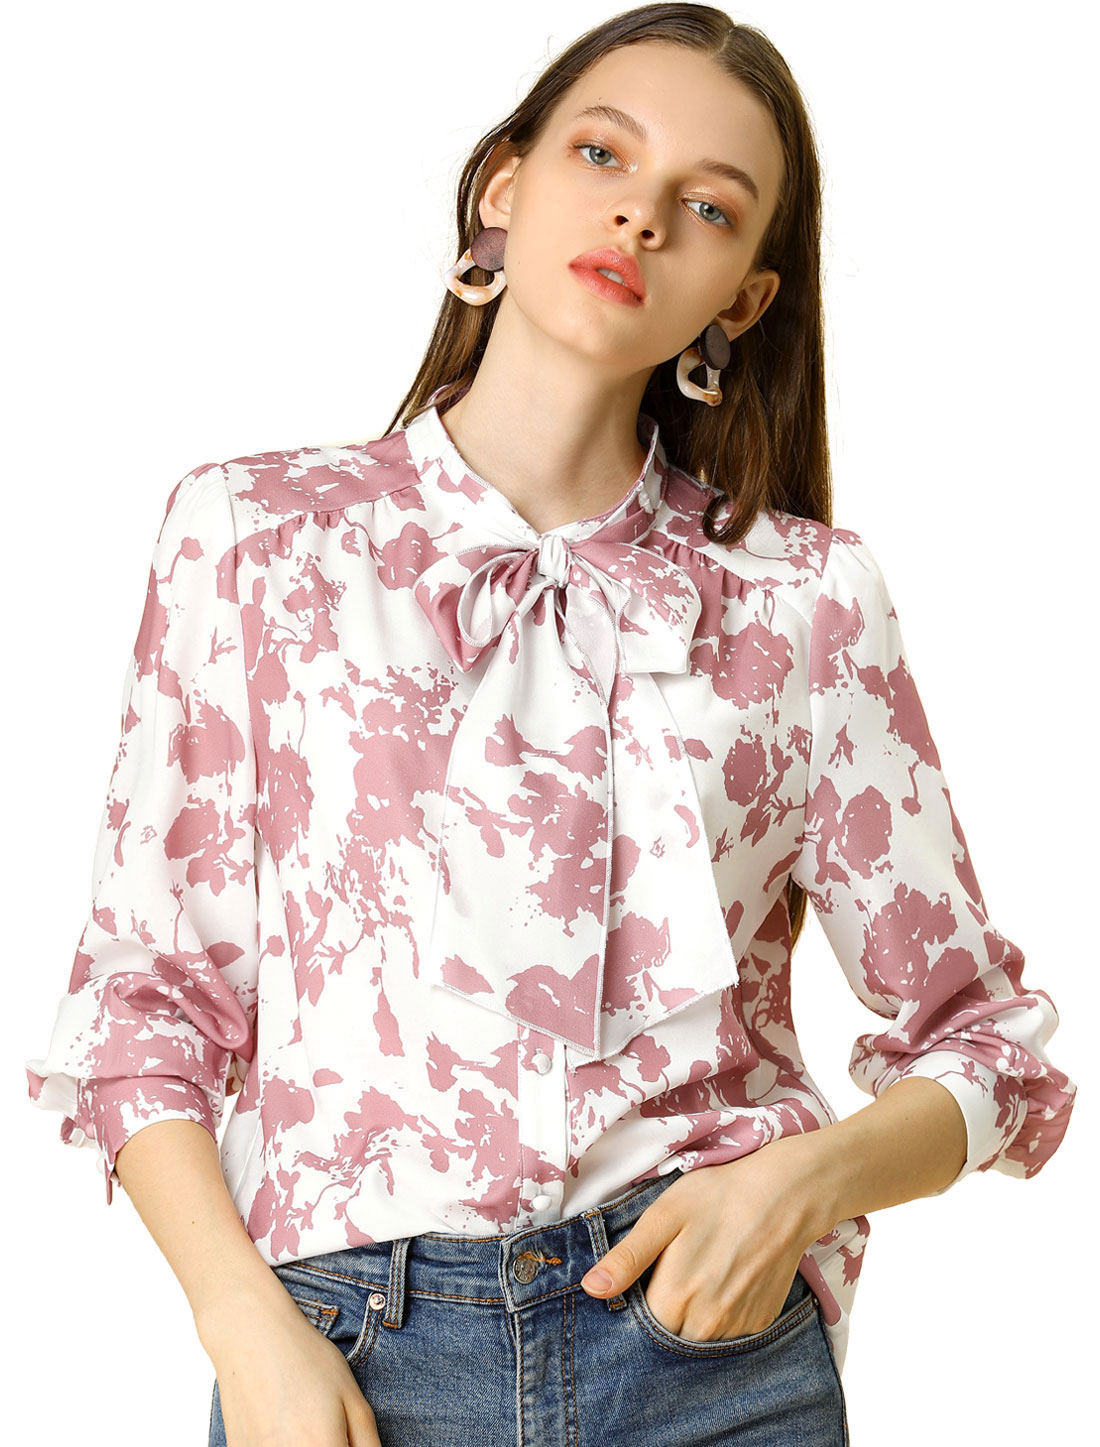 Allegra K Women's Floral Ruffle Sleeves Button Up Blouse Tie Neck Shirt White S